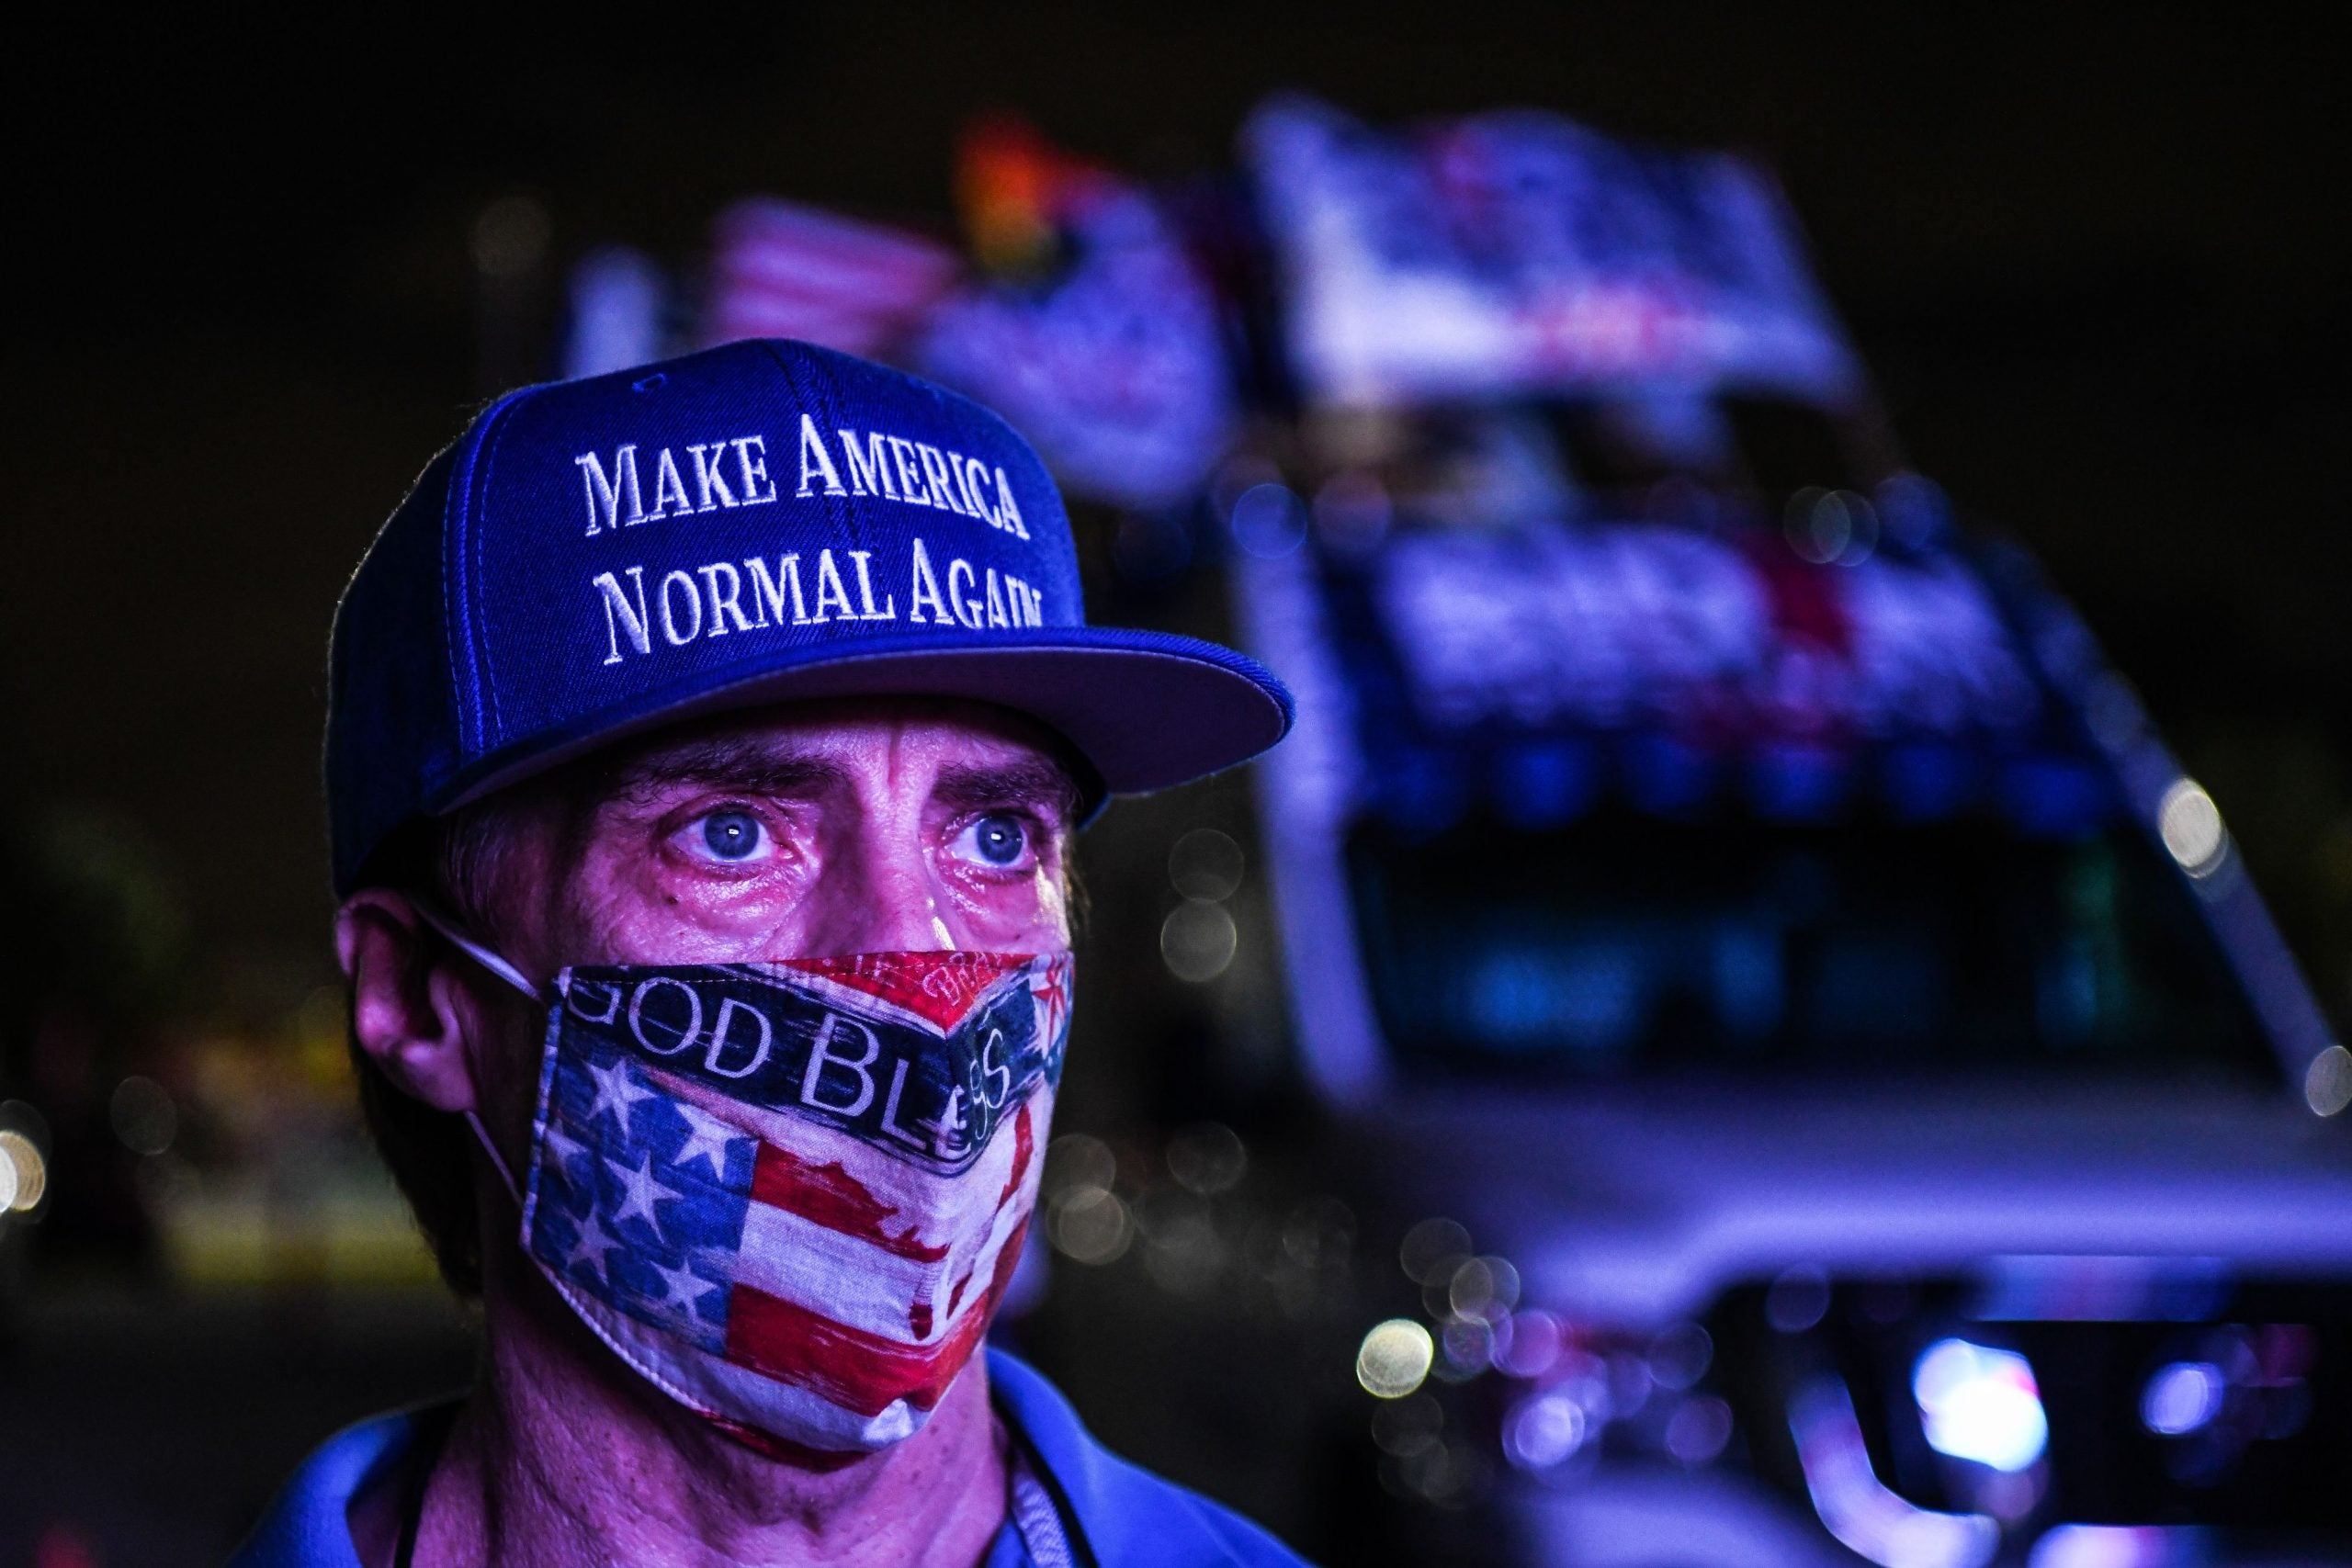 American voters want certainty. Instead they have doubt, division and a nation under threat